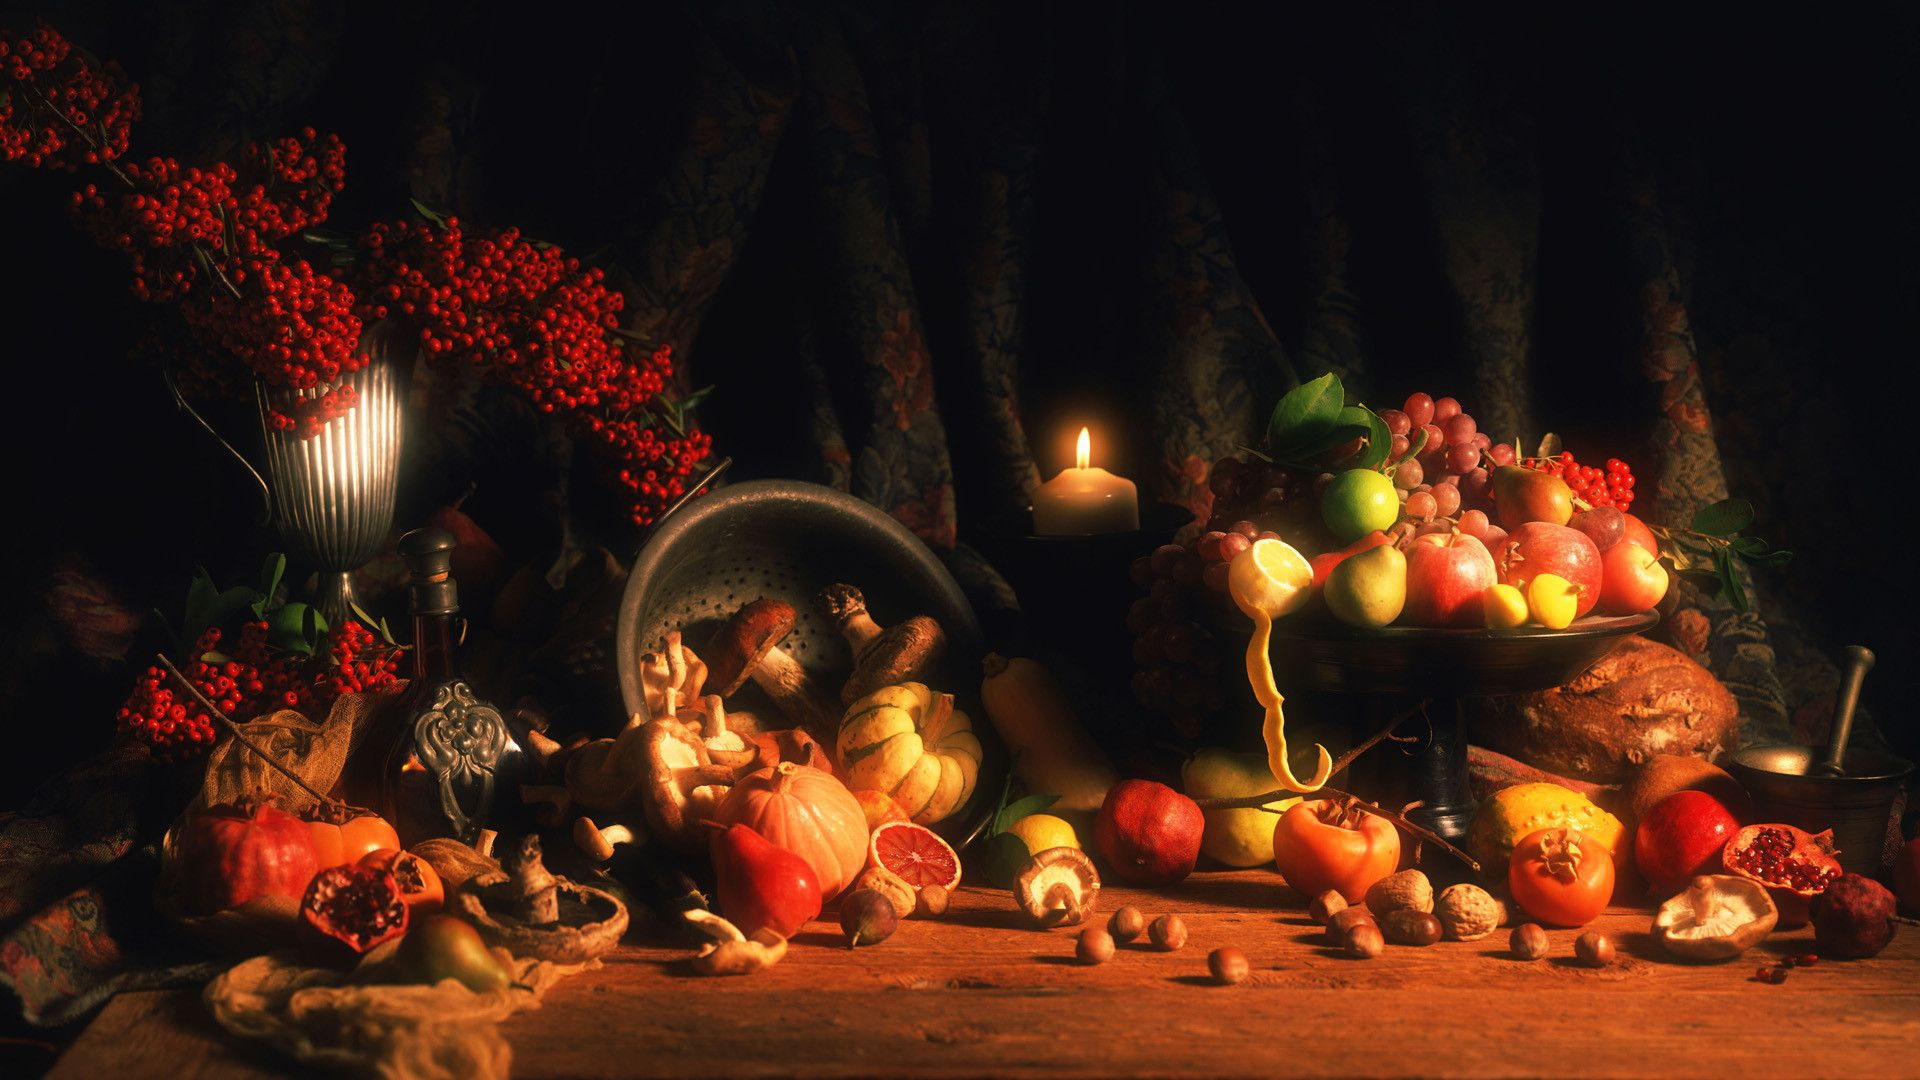 Free download Thanksgiving Day Wallpapers 1920x1080 Wallpapers 1920x1080 [1920x1080] for your Desktop, Mobile & Tablet